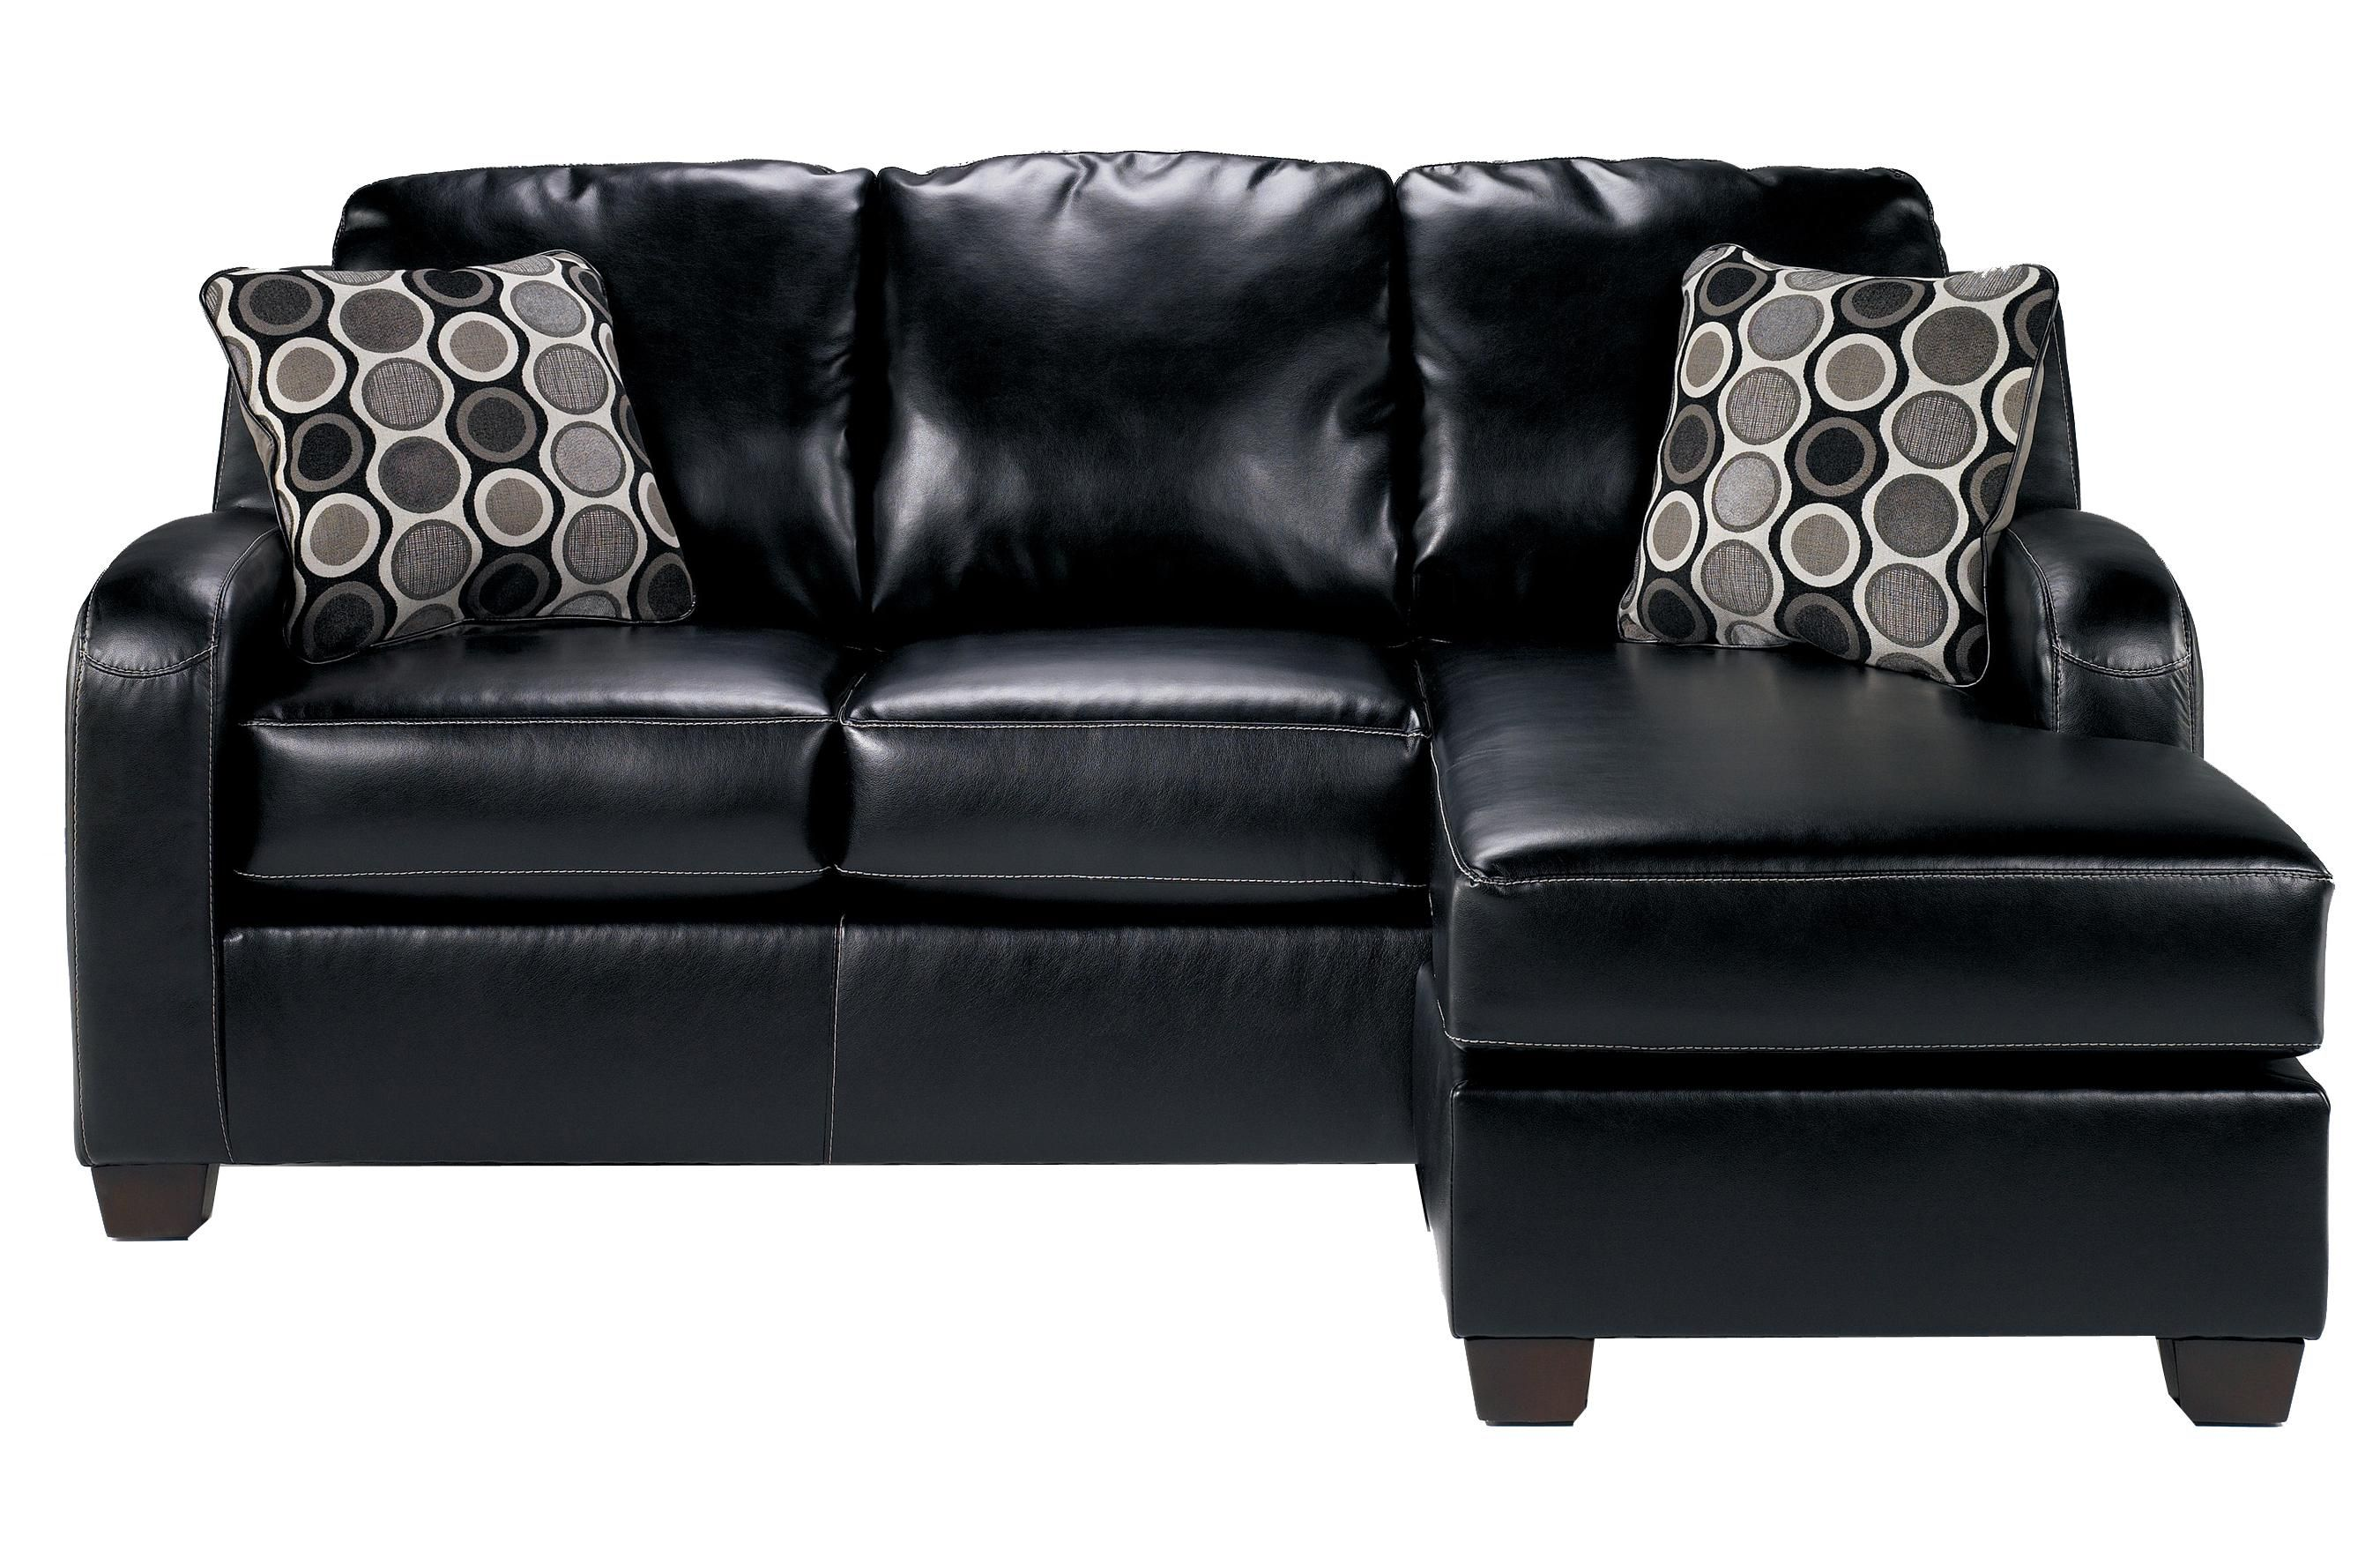 Devin DuraBlend - Black Sofa Chaise By Signature Design By Ashley